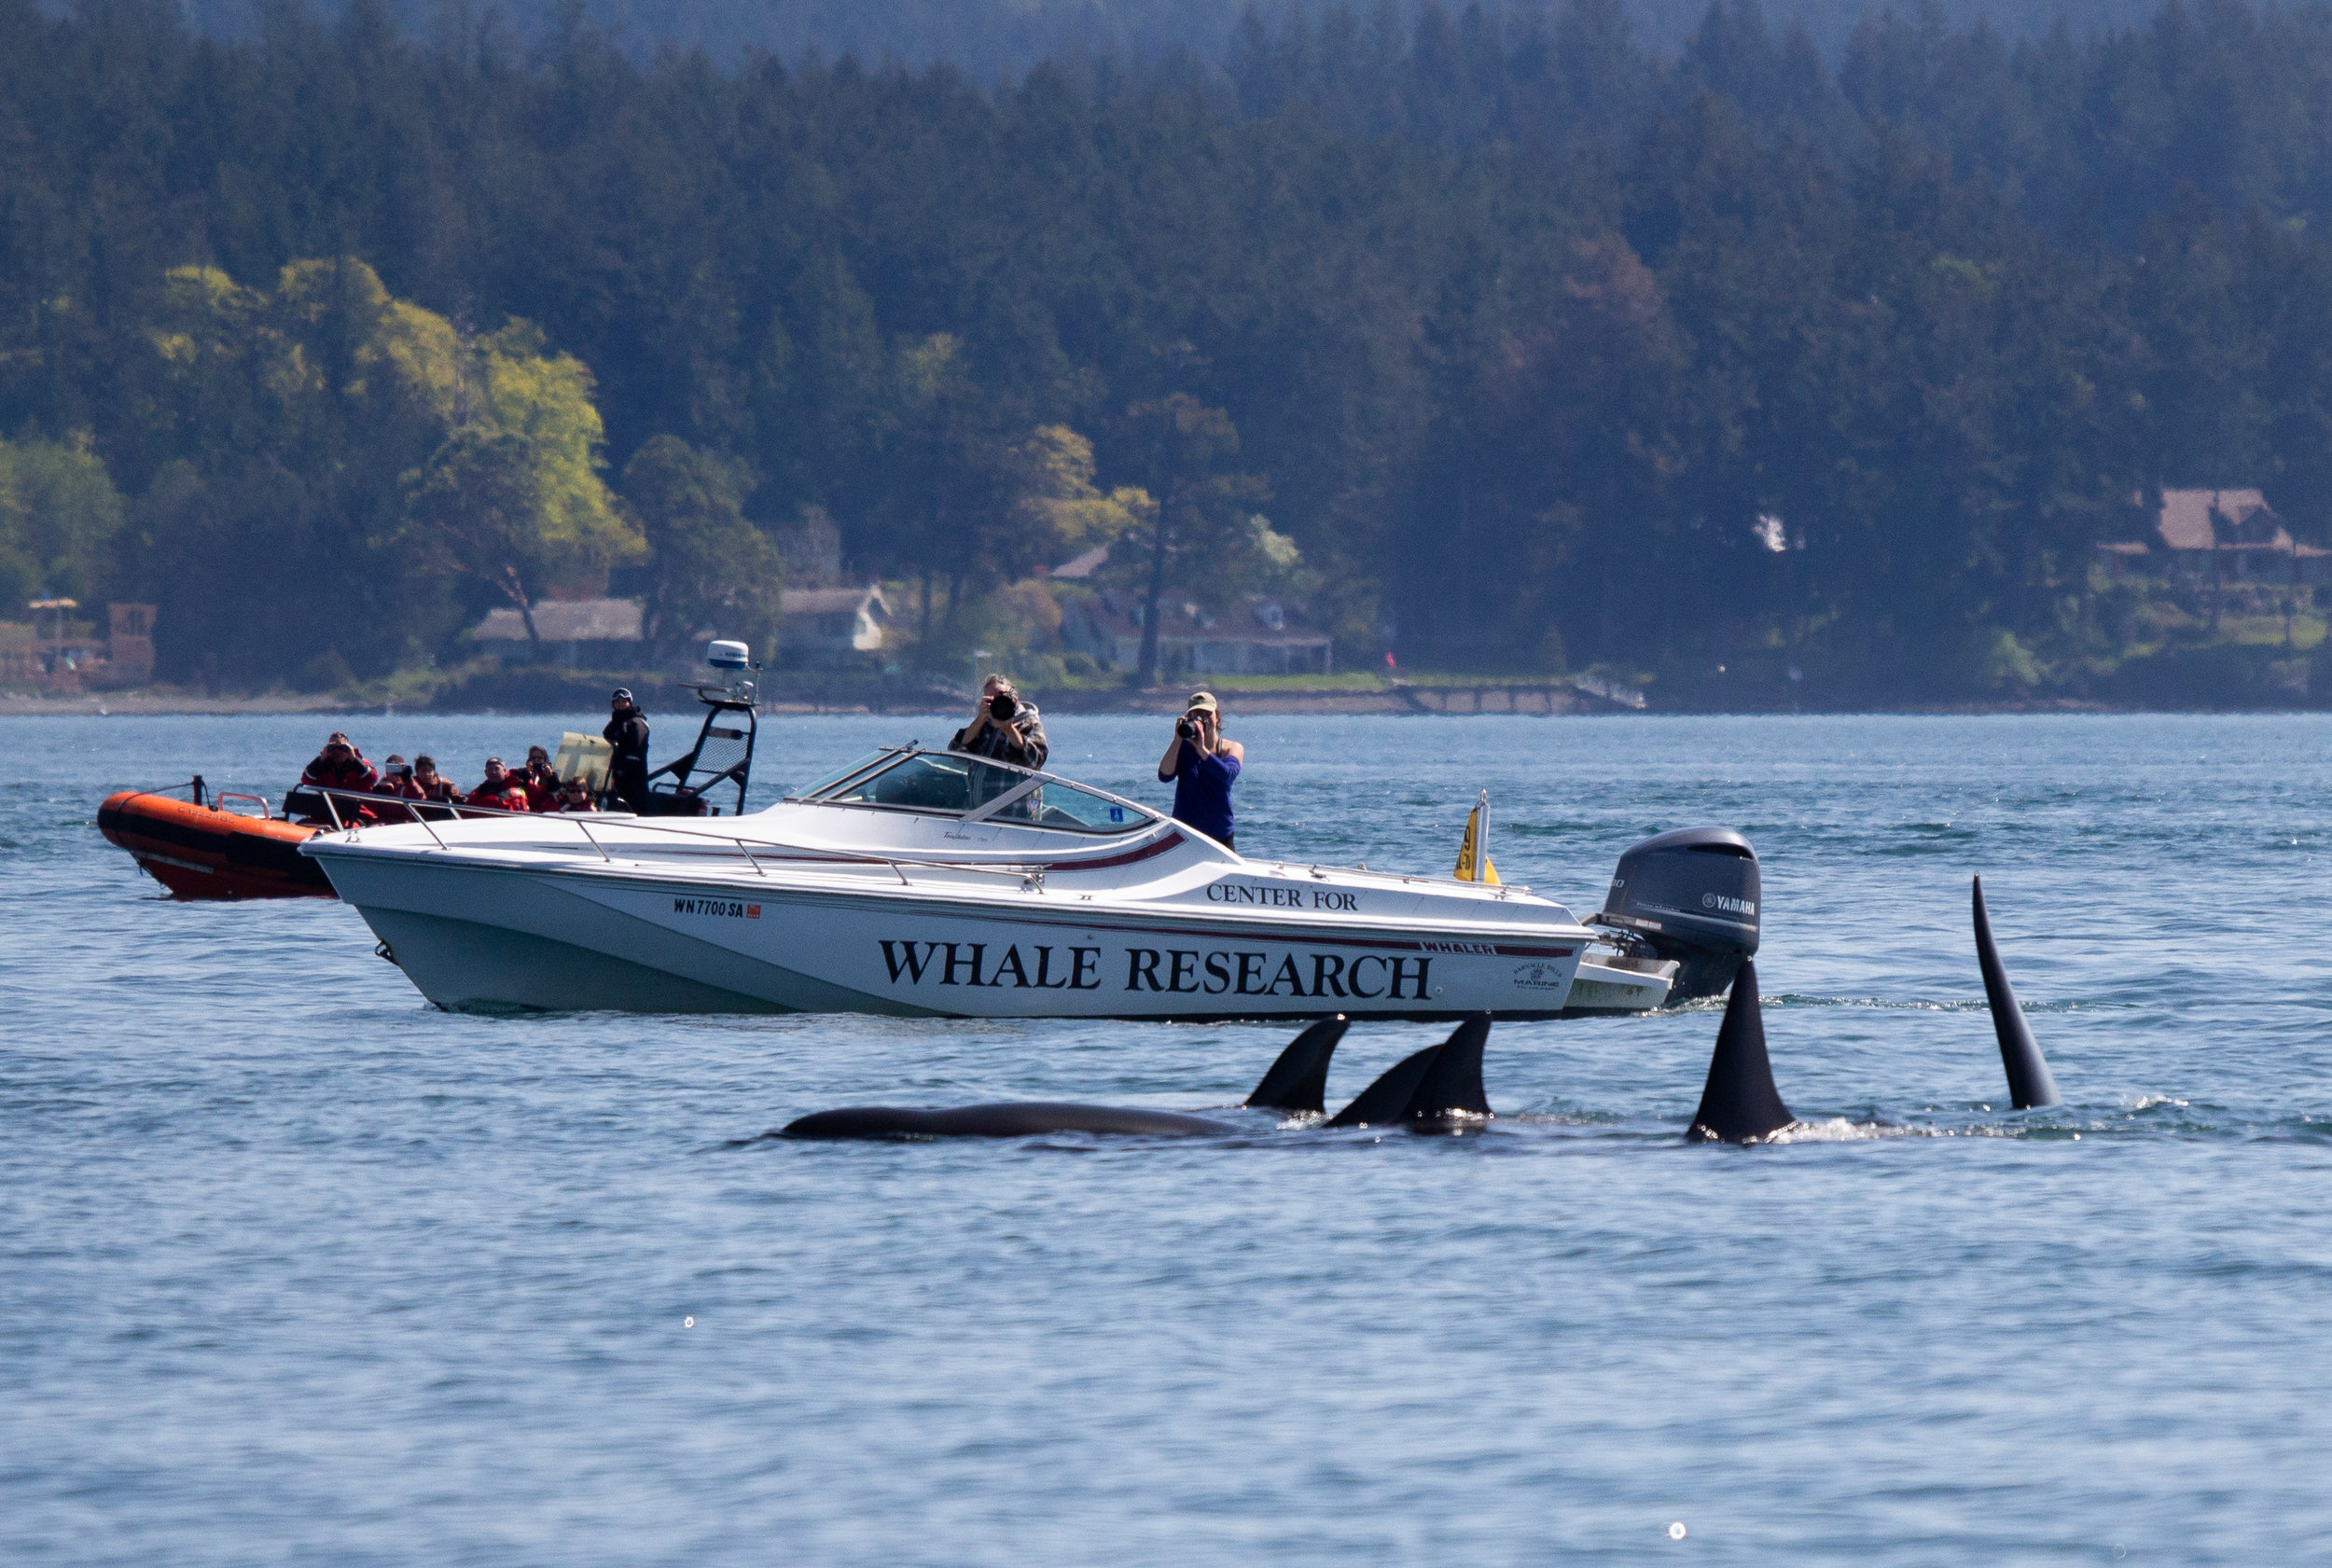 We can learn so much about these whales just by observing and taking photos. Photo by Natalie Reichenbacher.